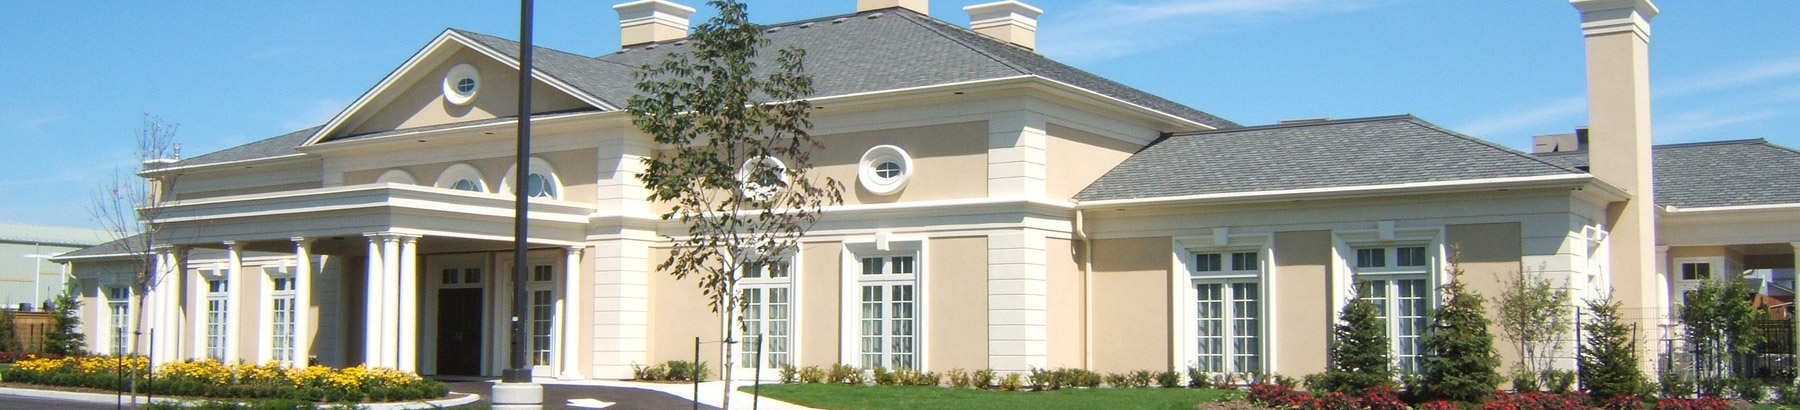 Logan Funeral Homes Cianfrone Architect